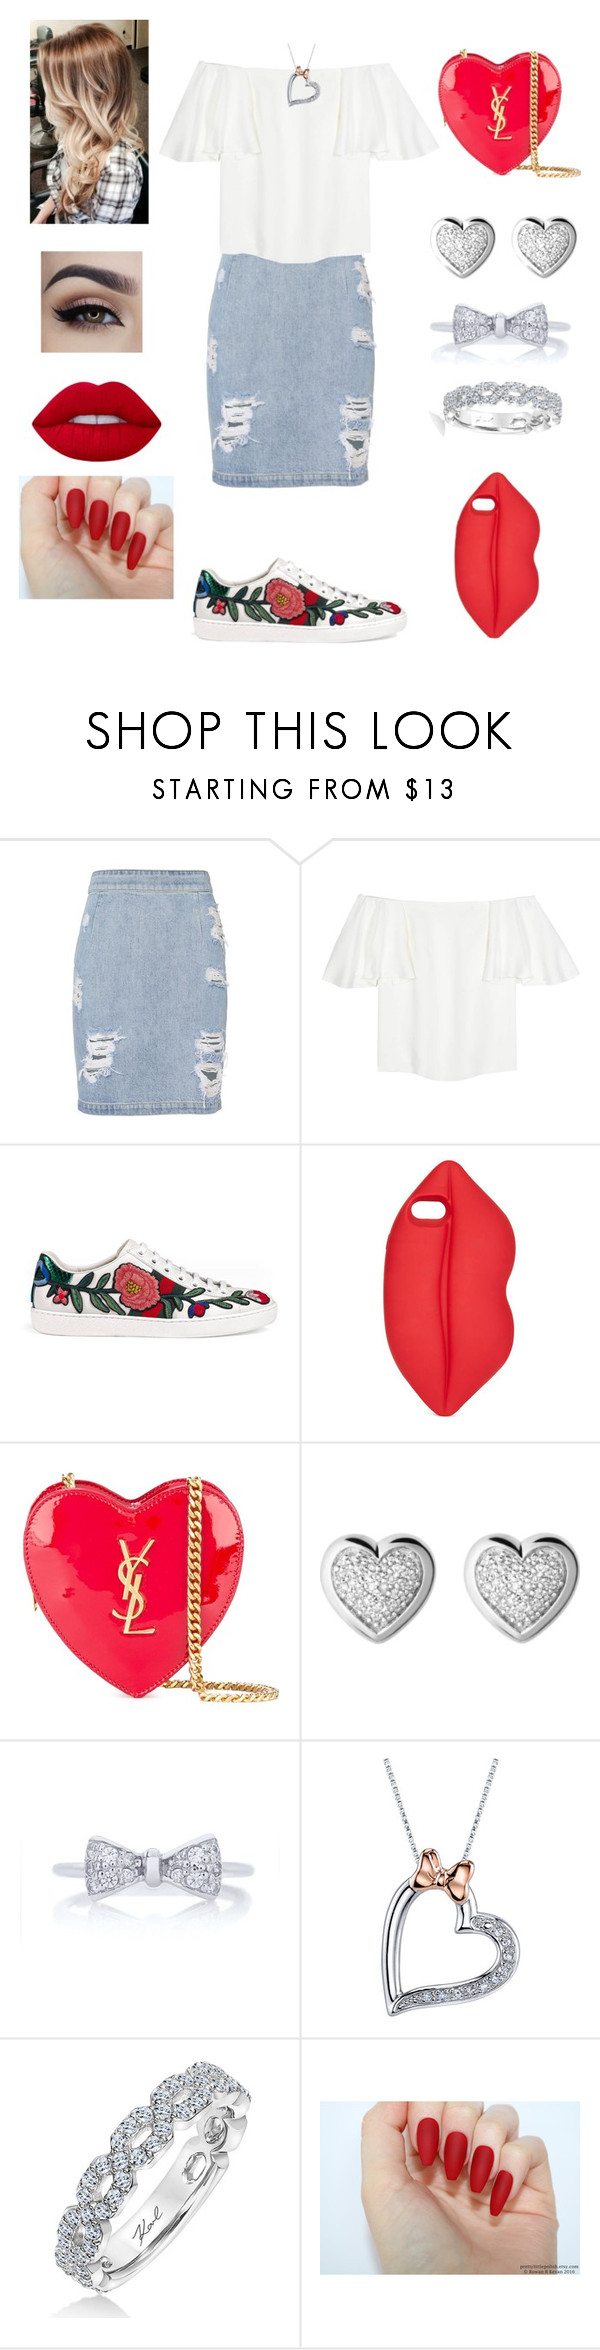 """Casual #24"" by qigfy ❤ liked on Polyvore featuring IRO, Valentino, Gucci, Lulu Guinness, Yves Saint Laurent, Links of London, Disney, Karl Lagerfeld and Lime Crime"